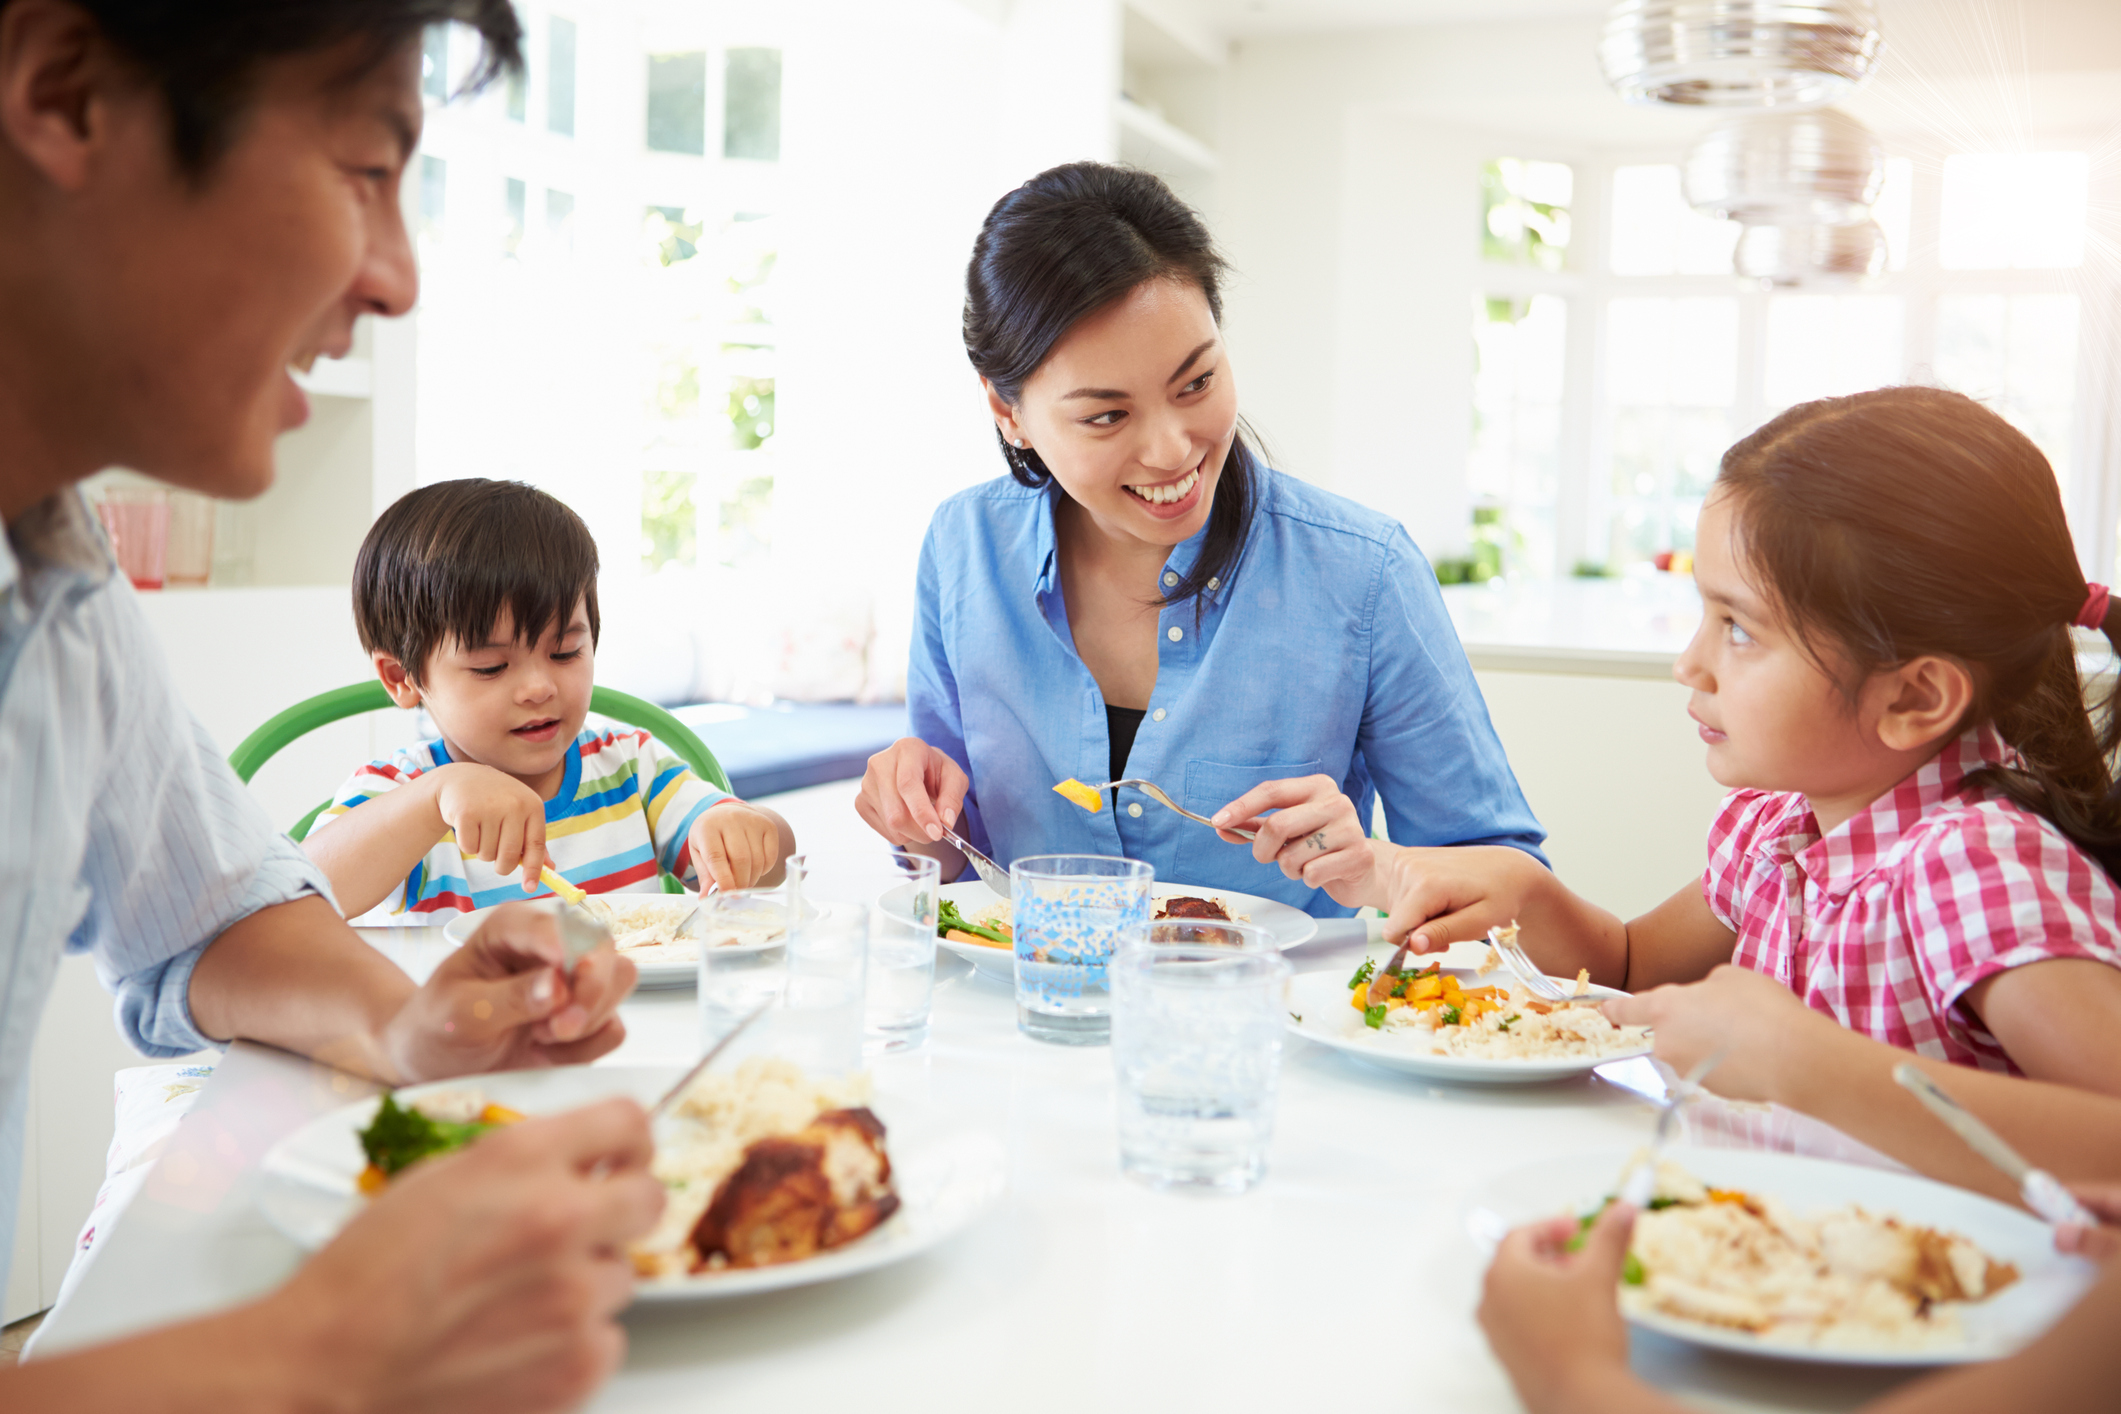 Three Mealtime Questions that Change Everything (Including the Quality of Your Food)